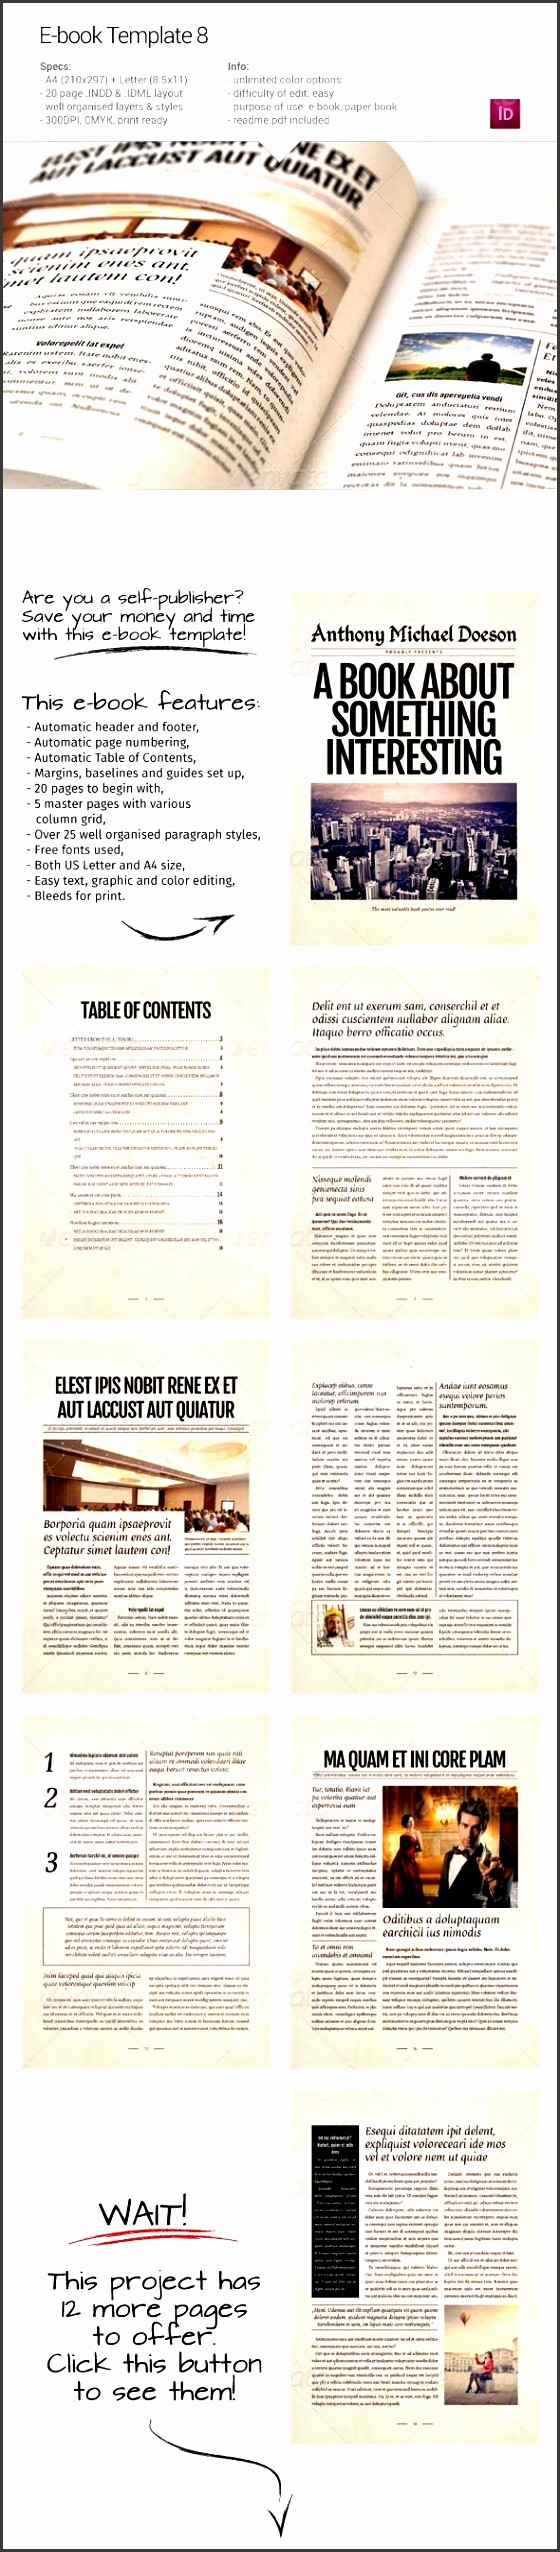 Cookbook Table Of Contents Template Elegant 10 Book Table Contents Template Sampletemplatess